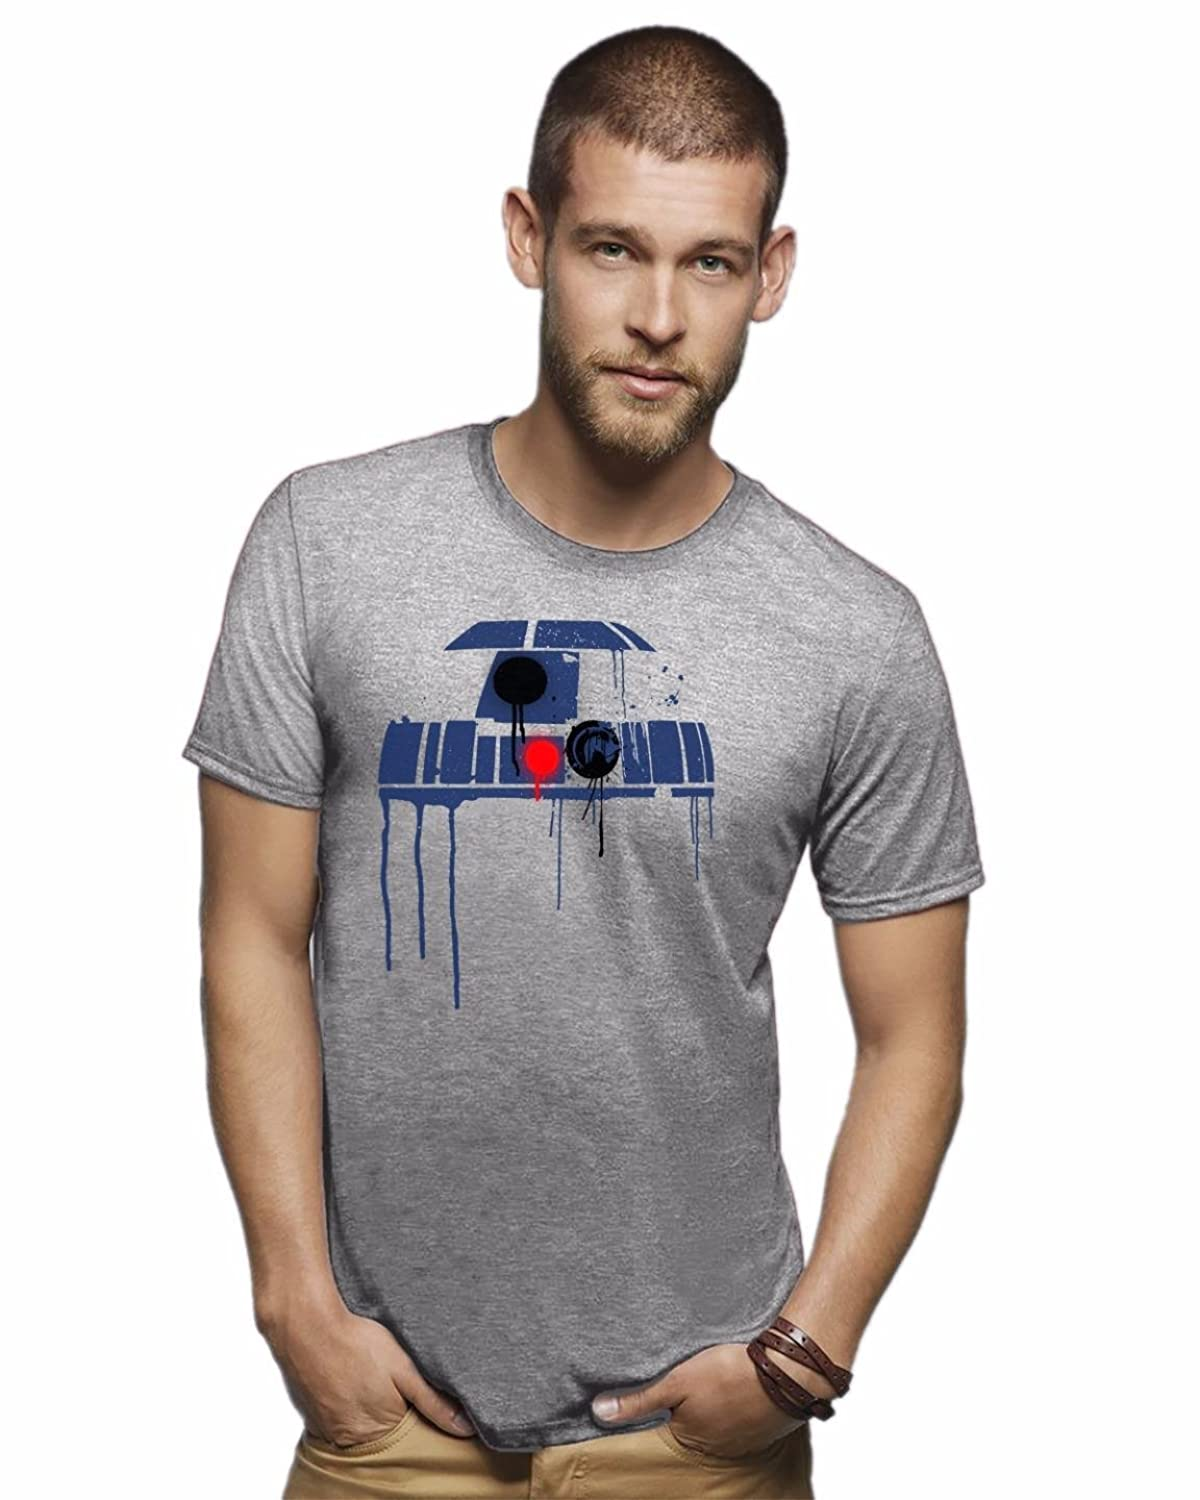 R2D2 funny movie shirt graphic distressed tshirt funny sci fi movie tee